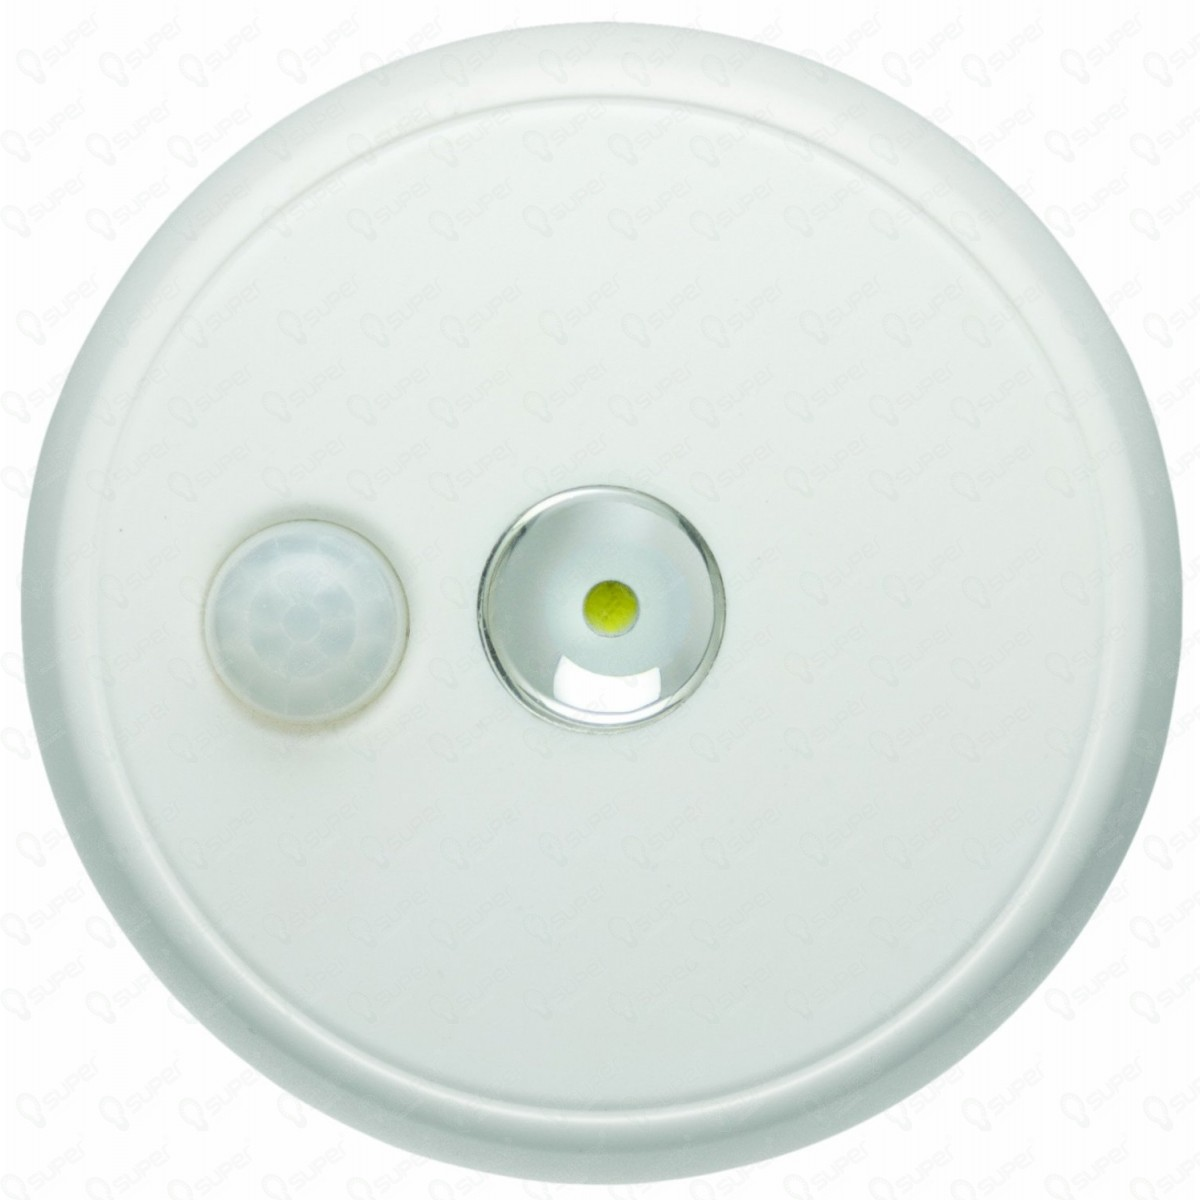 indoor-motion-sensor-ceiling-light-photo-3